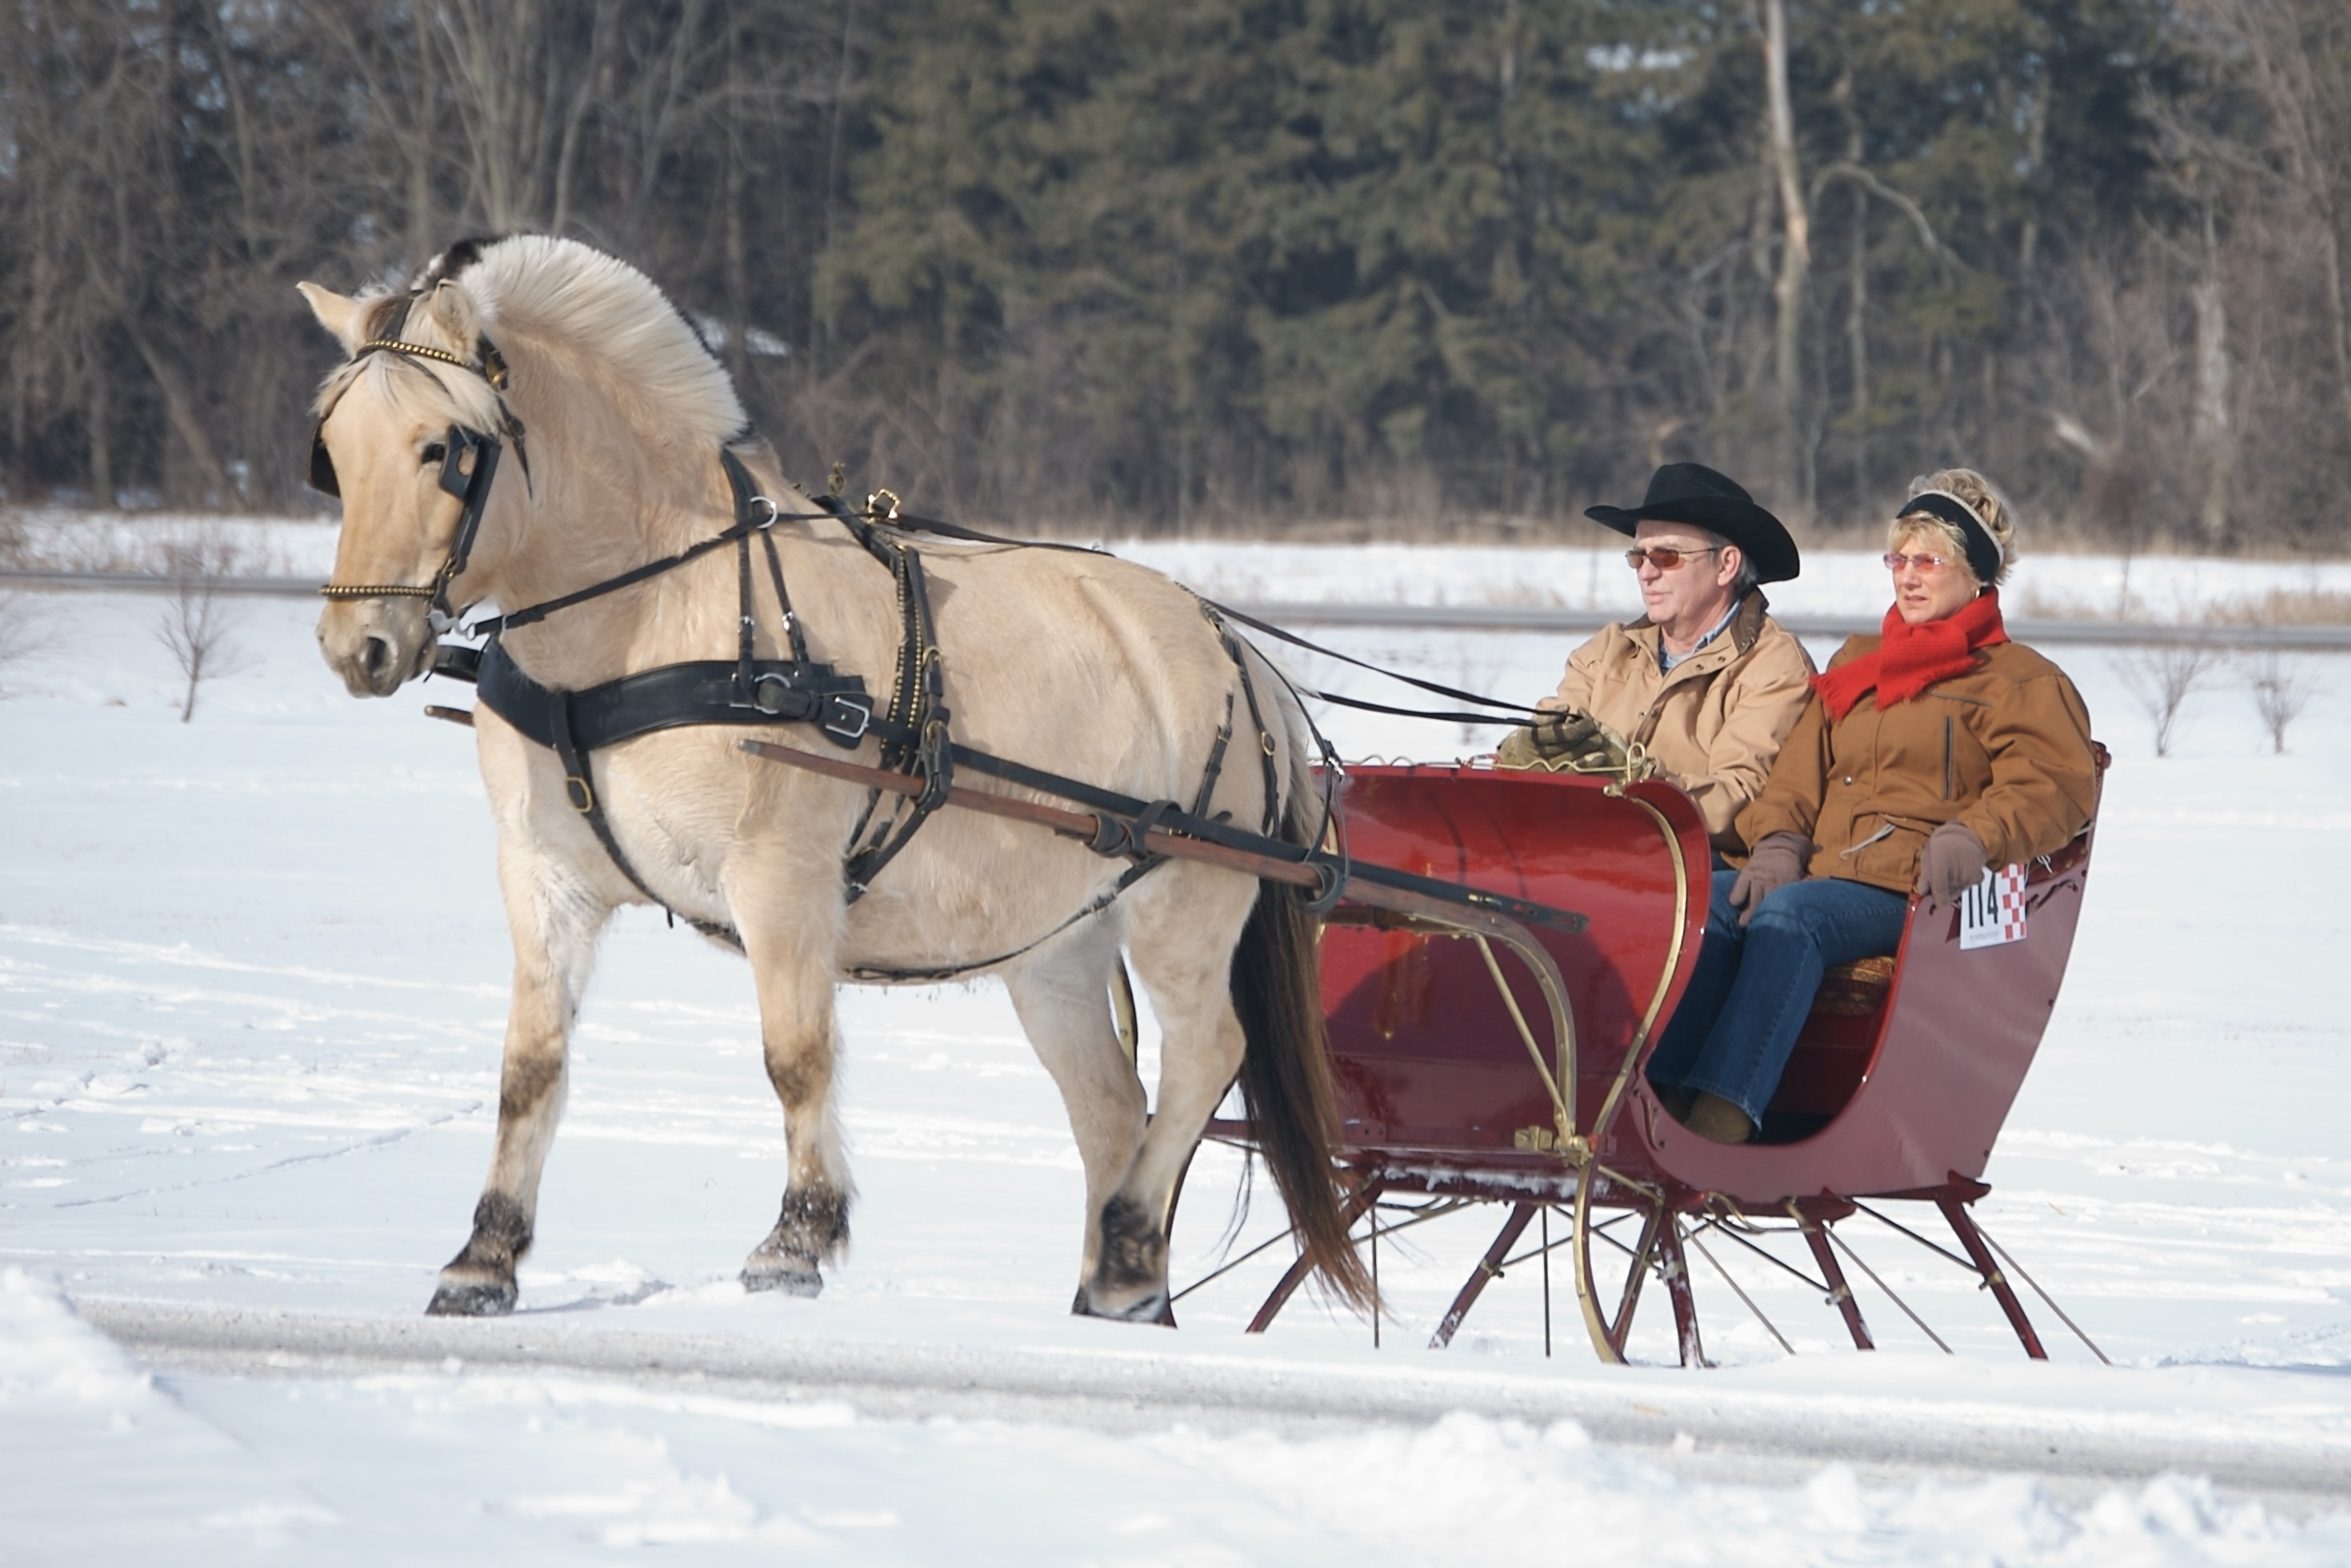 A white Norwegian Fjordhorse is pulling a portland cutter sleigh